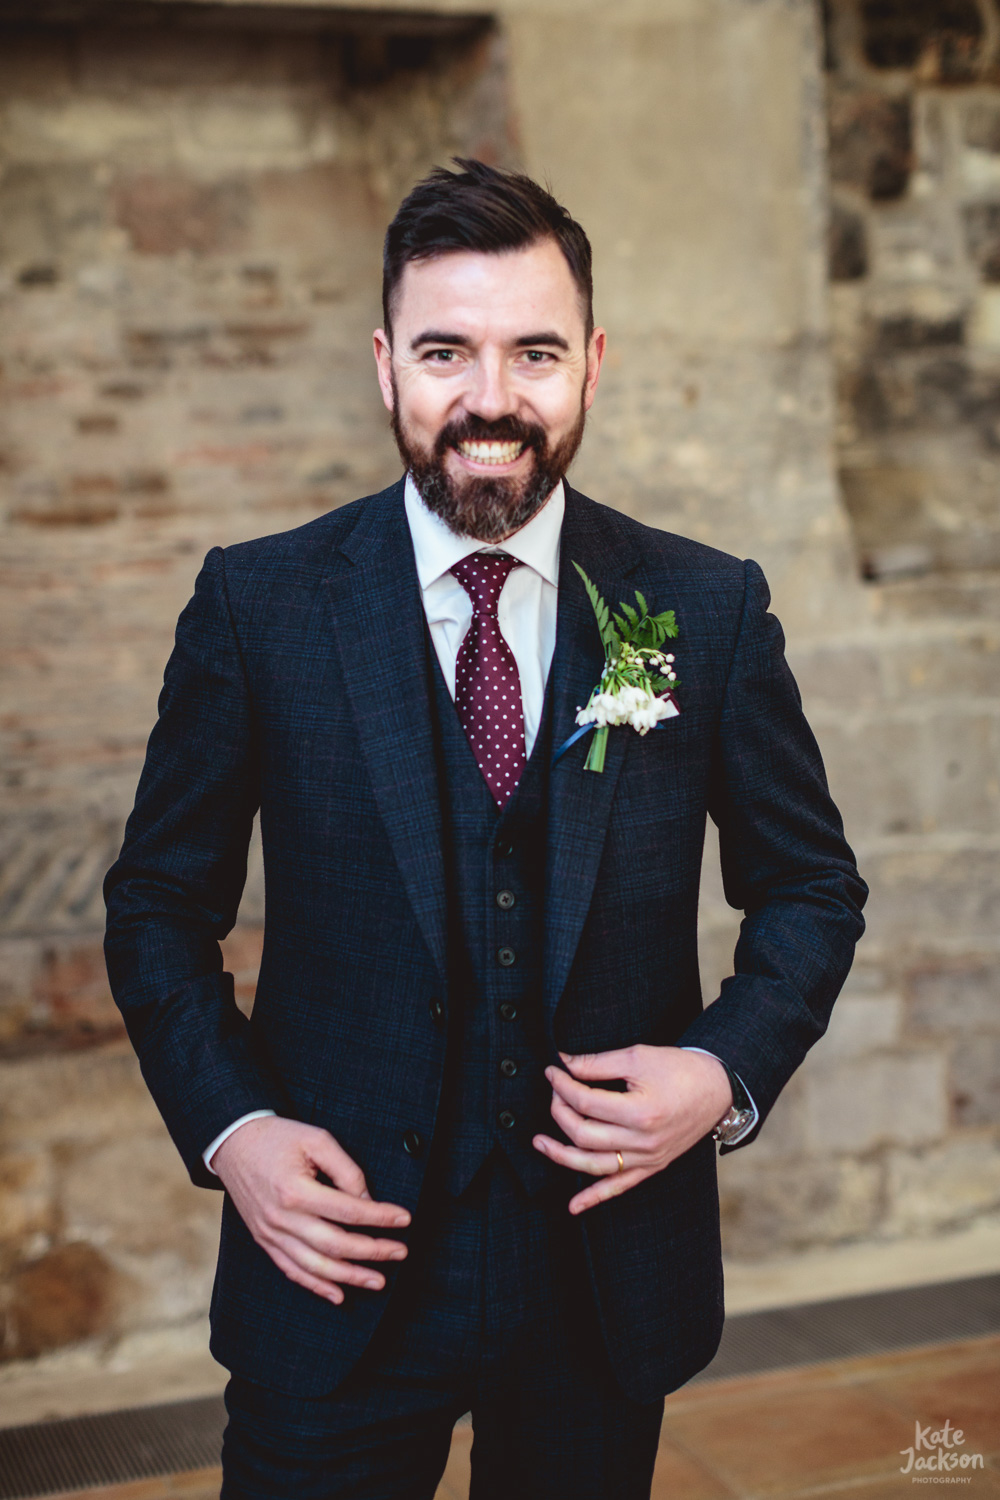 Super happy & fun Groom at Blackfriars Priory Gloucester